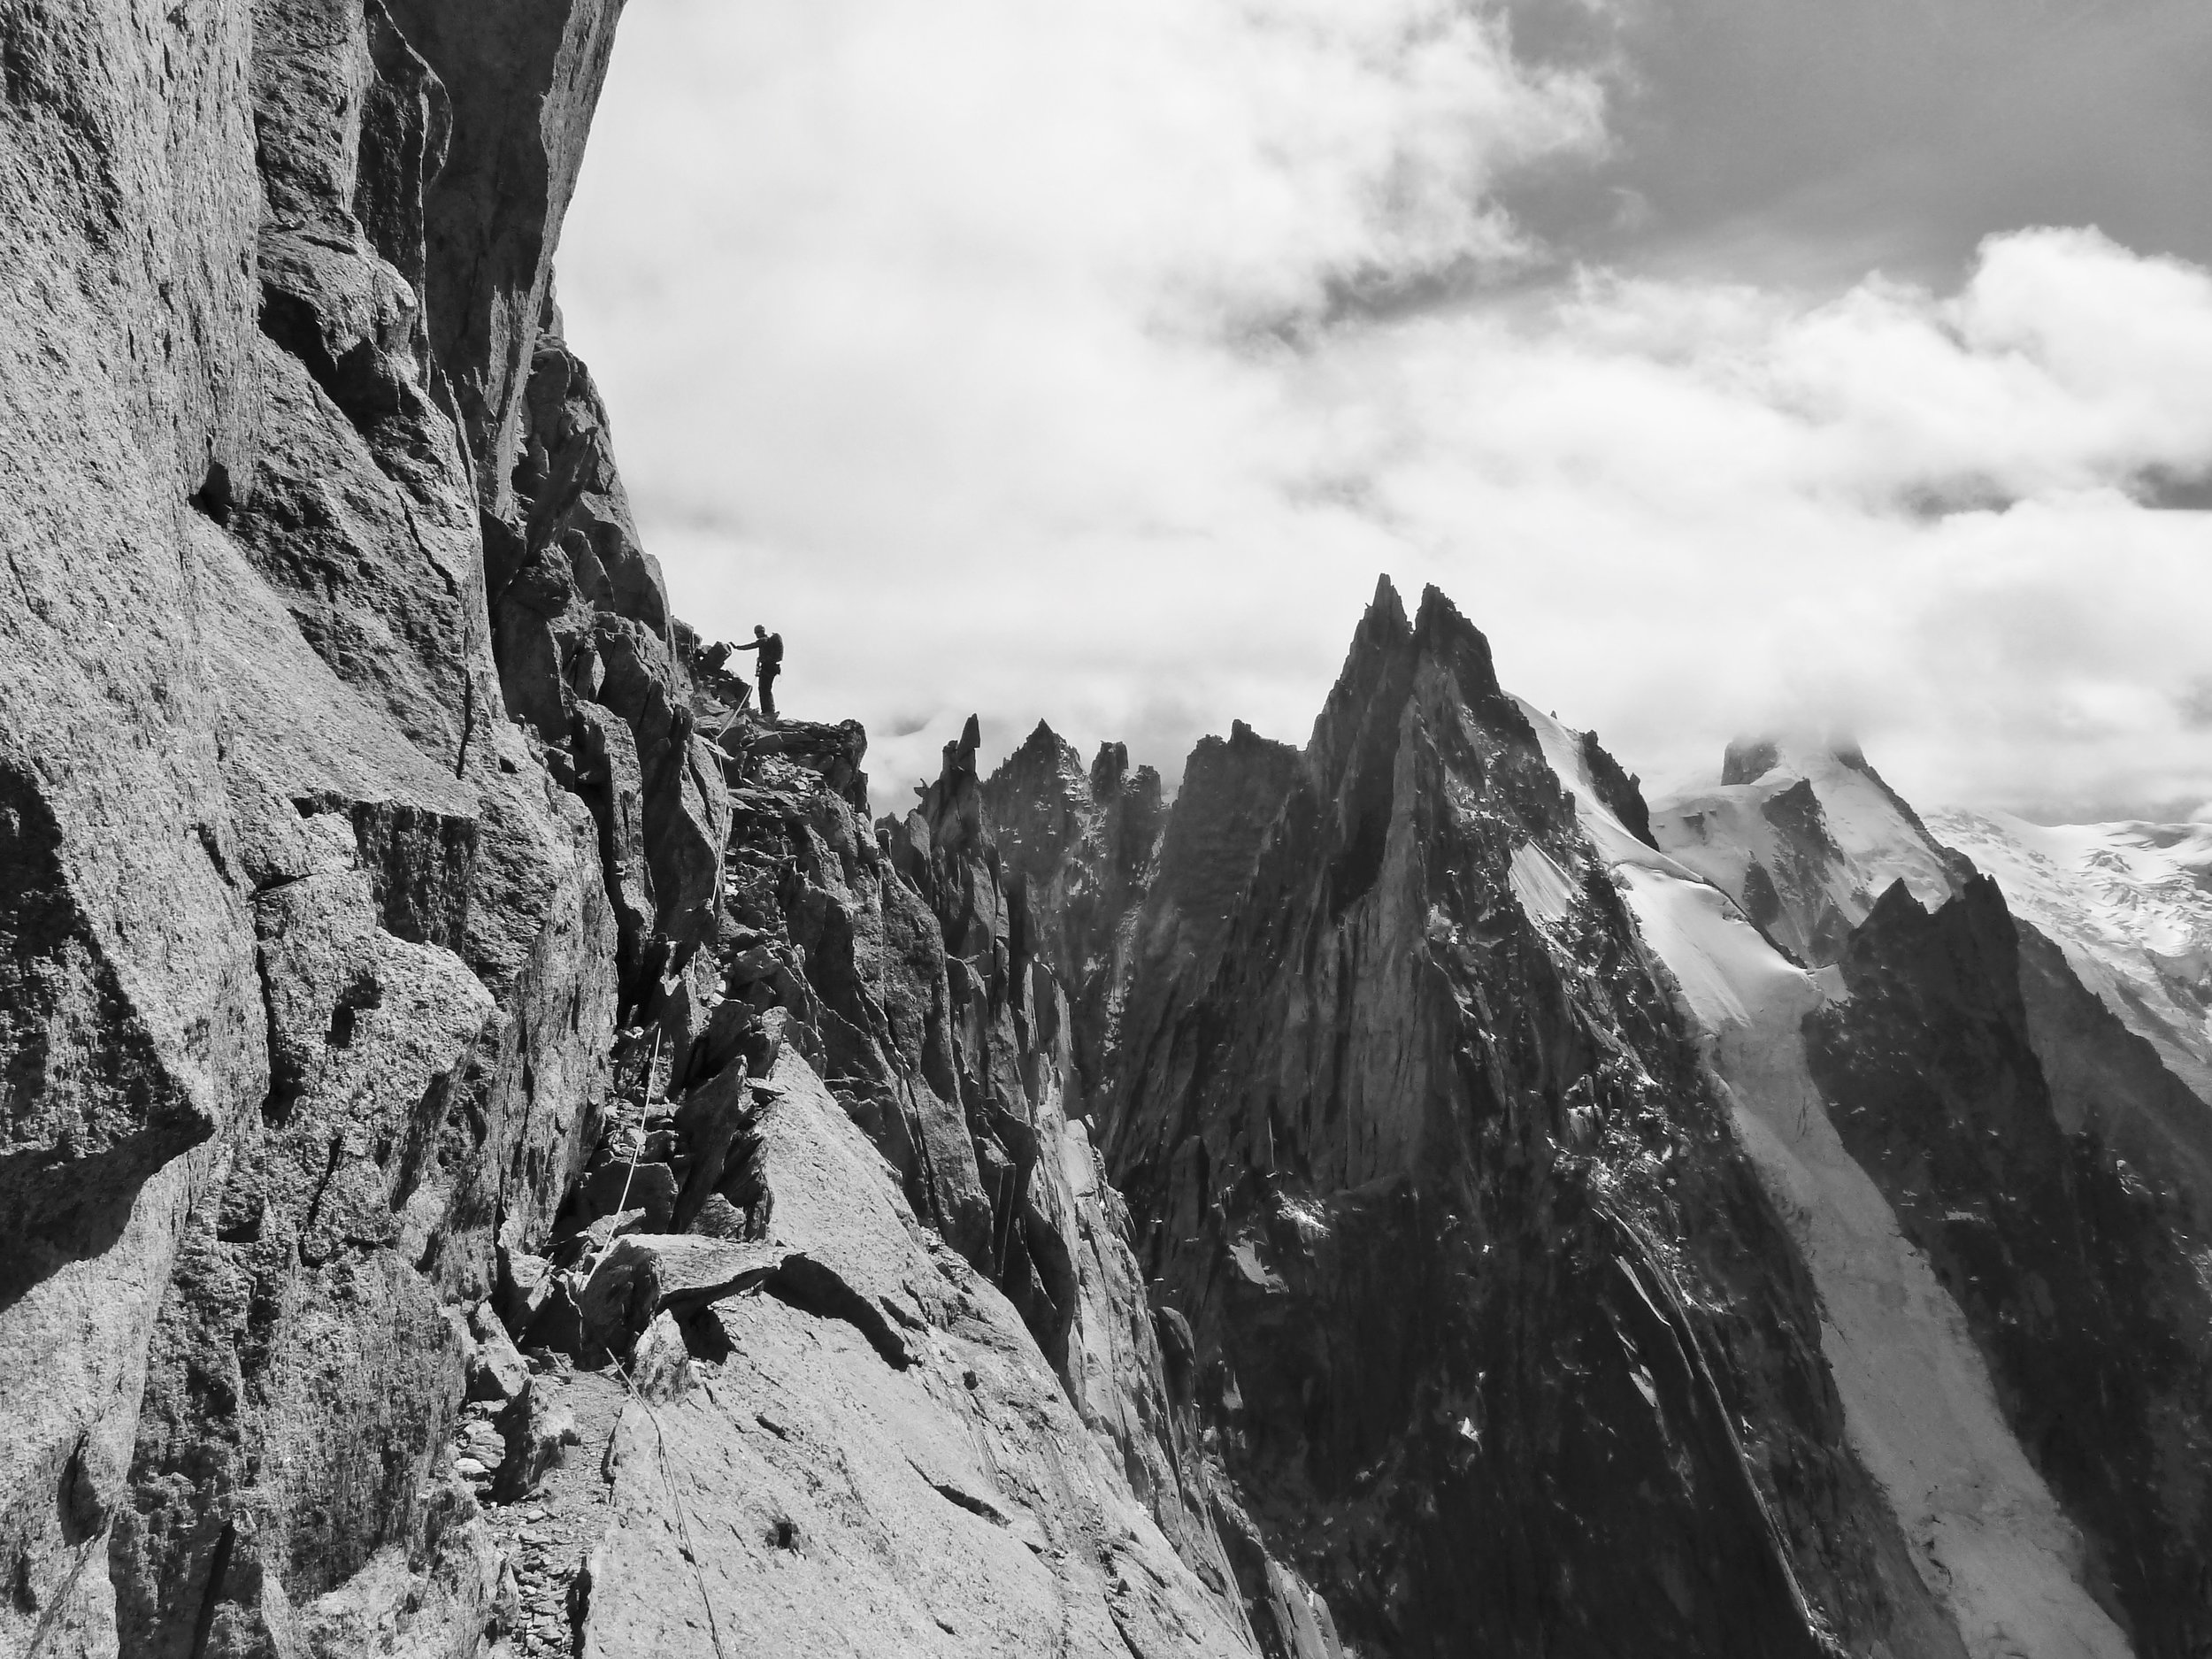 Tony Stone traversing the Central summit of the Blatiere.